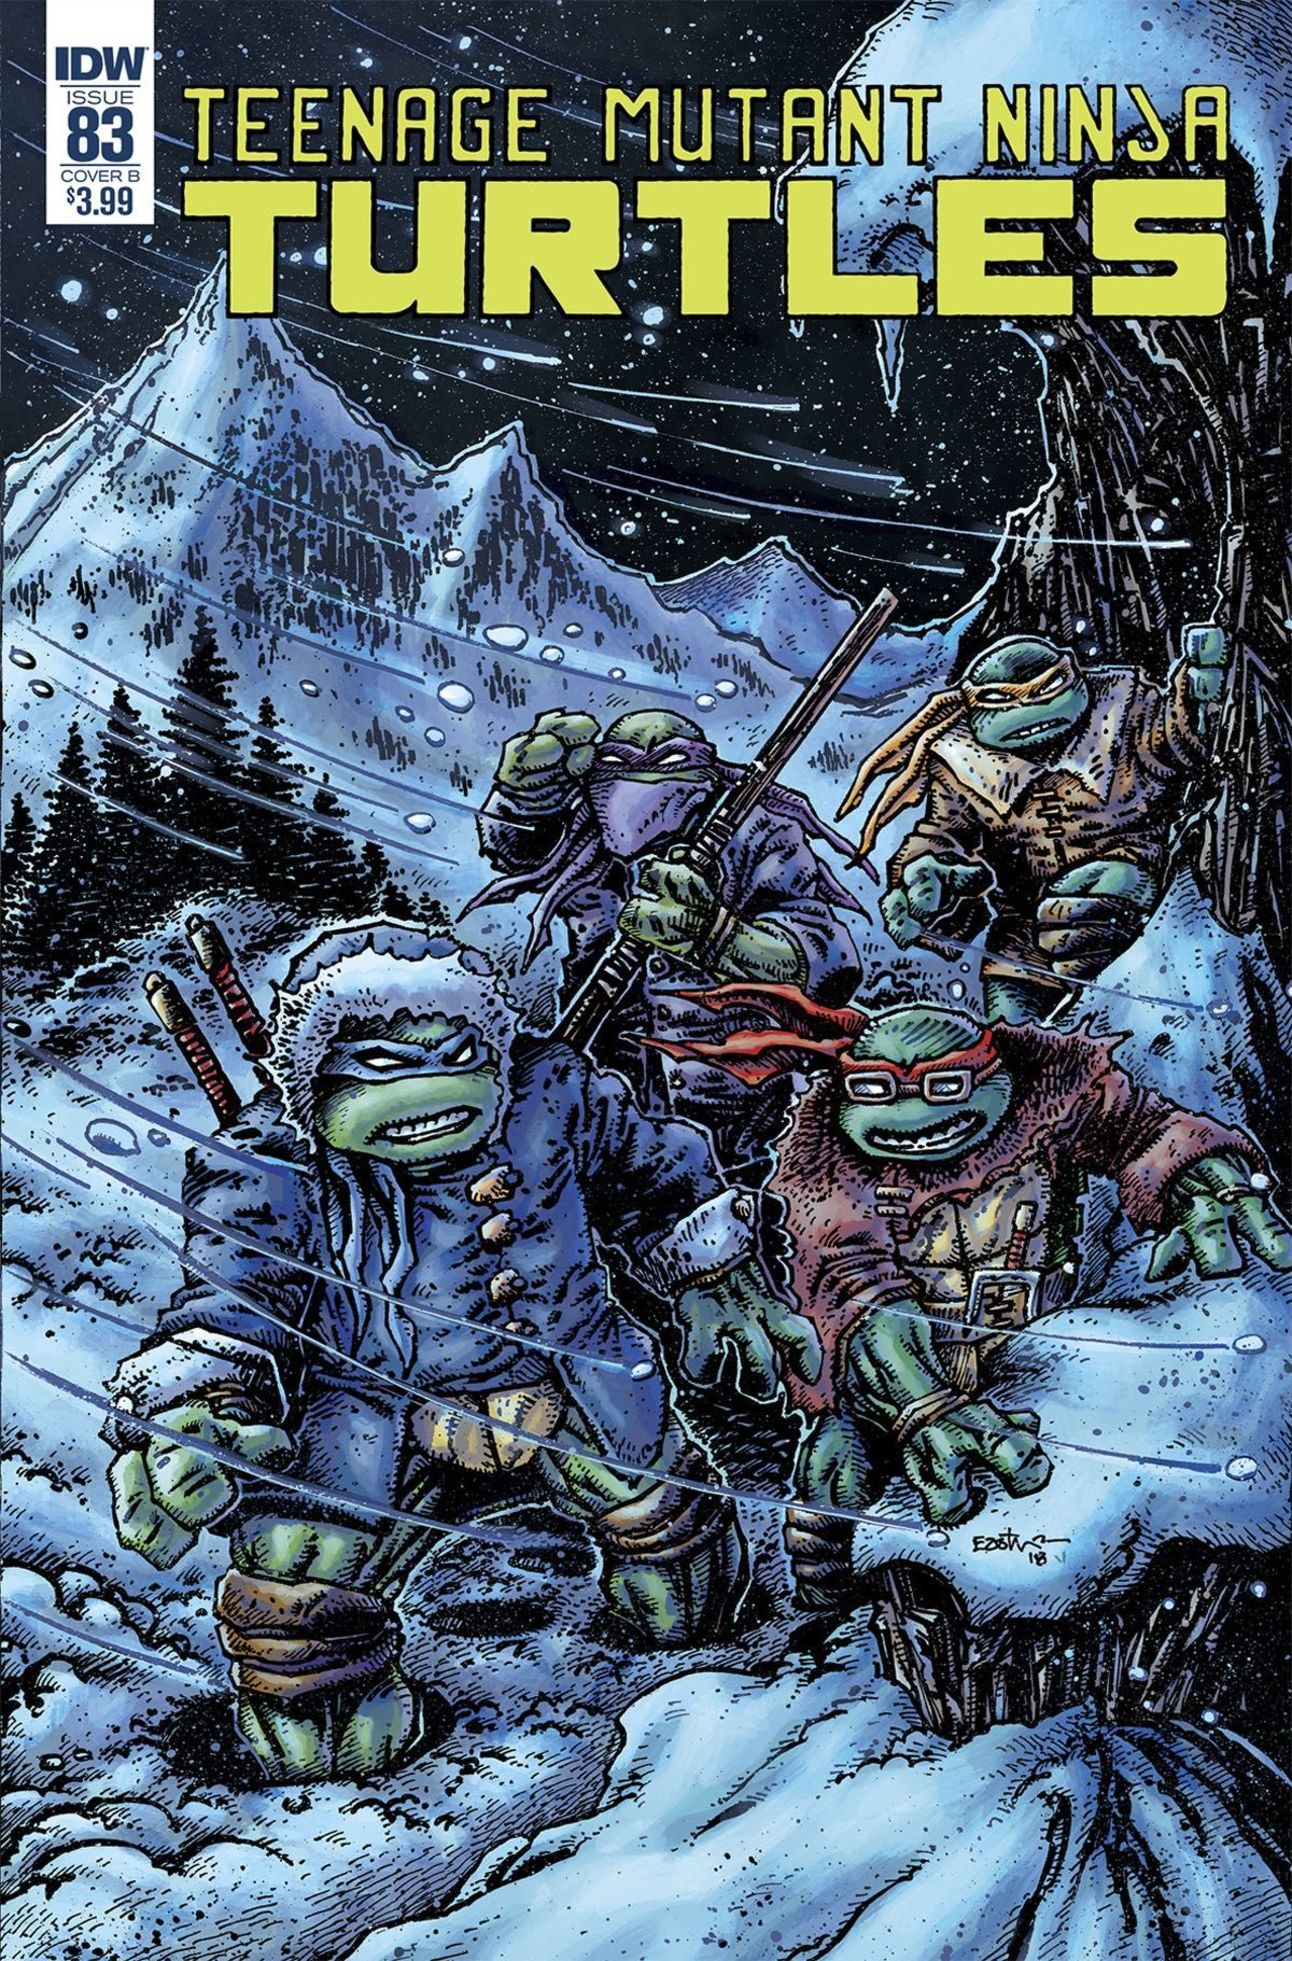 Teenage Mutant Ninja Turtles 83 cover by Kevin Eastman